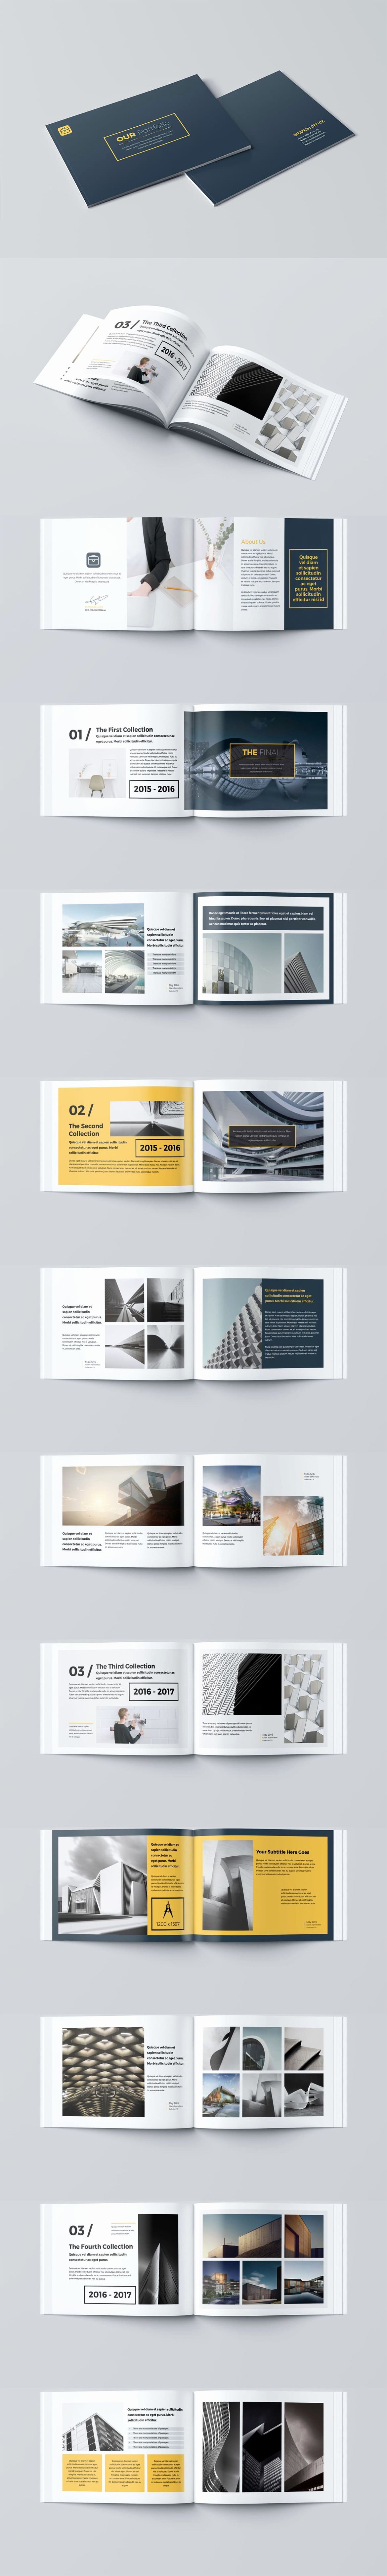 Free Indesign Portfolio Templates Inspirational Our Portfolio Architecture 24 Pages A4 & A5 Template